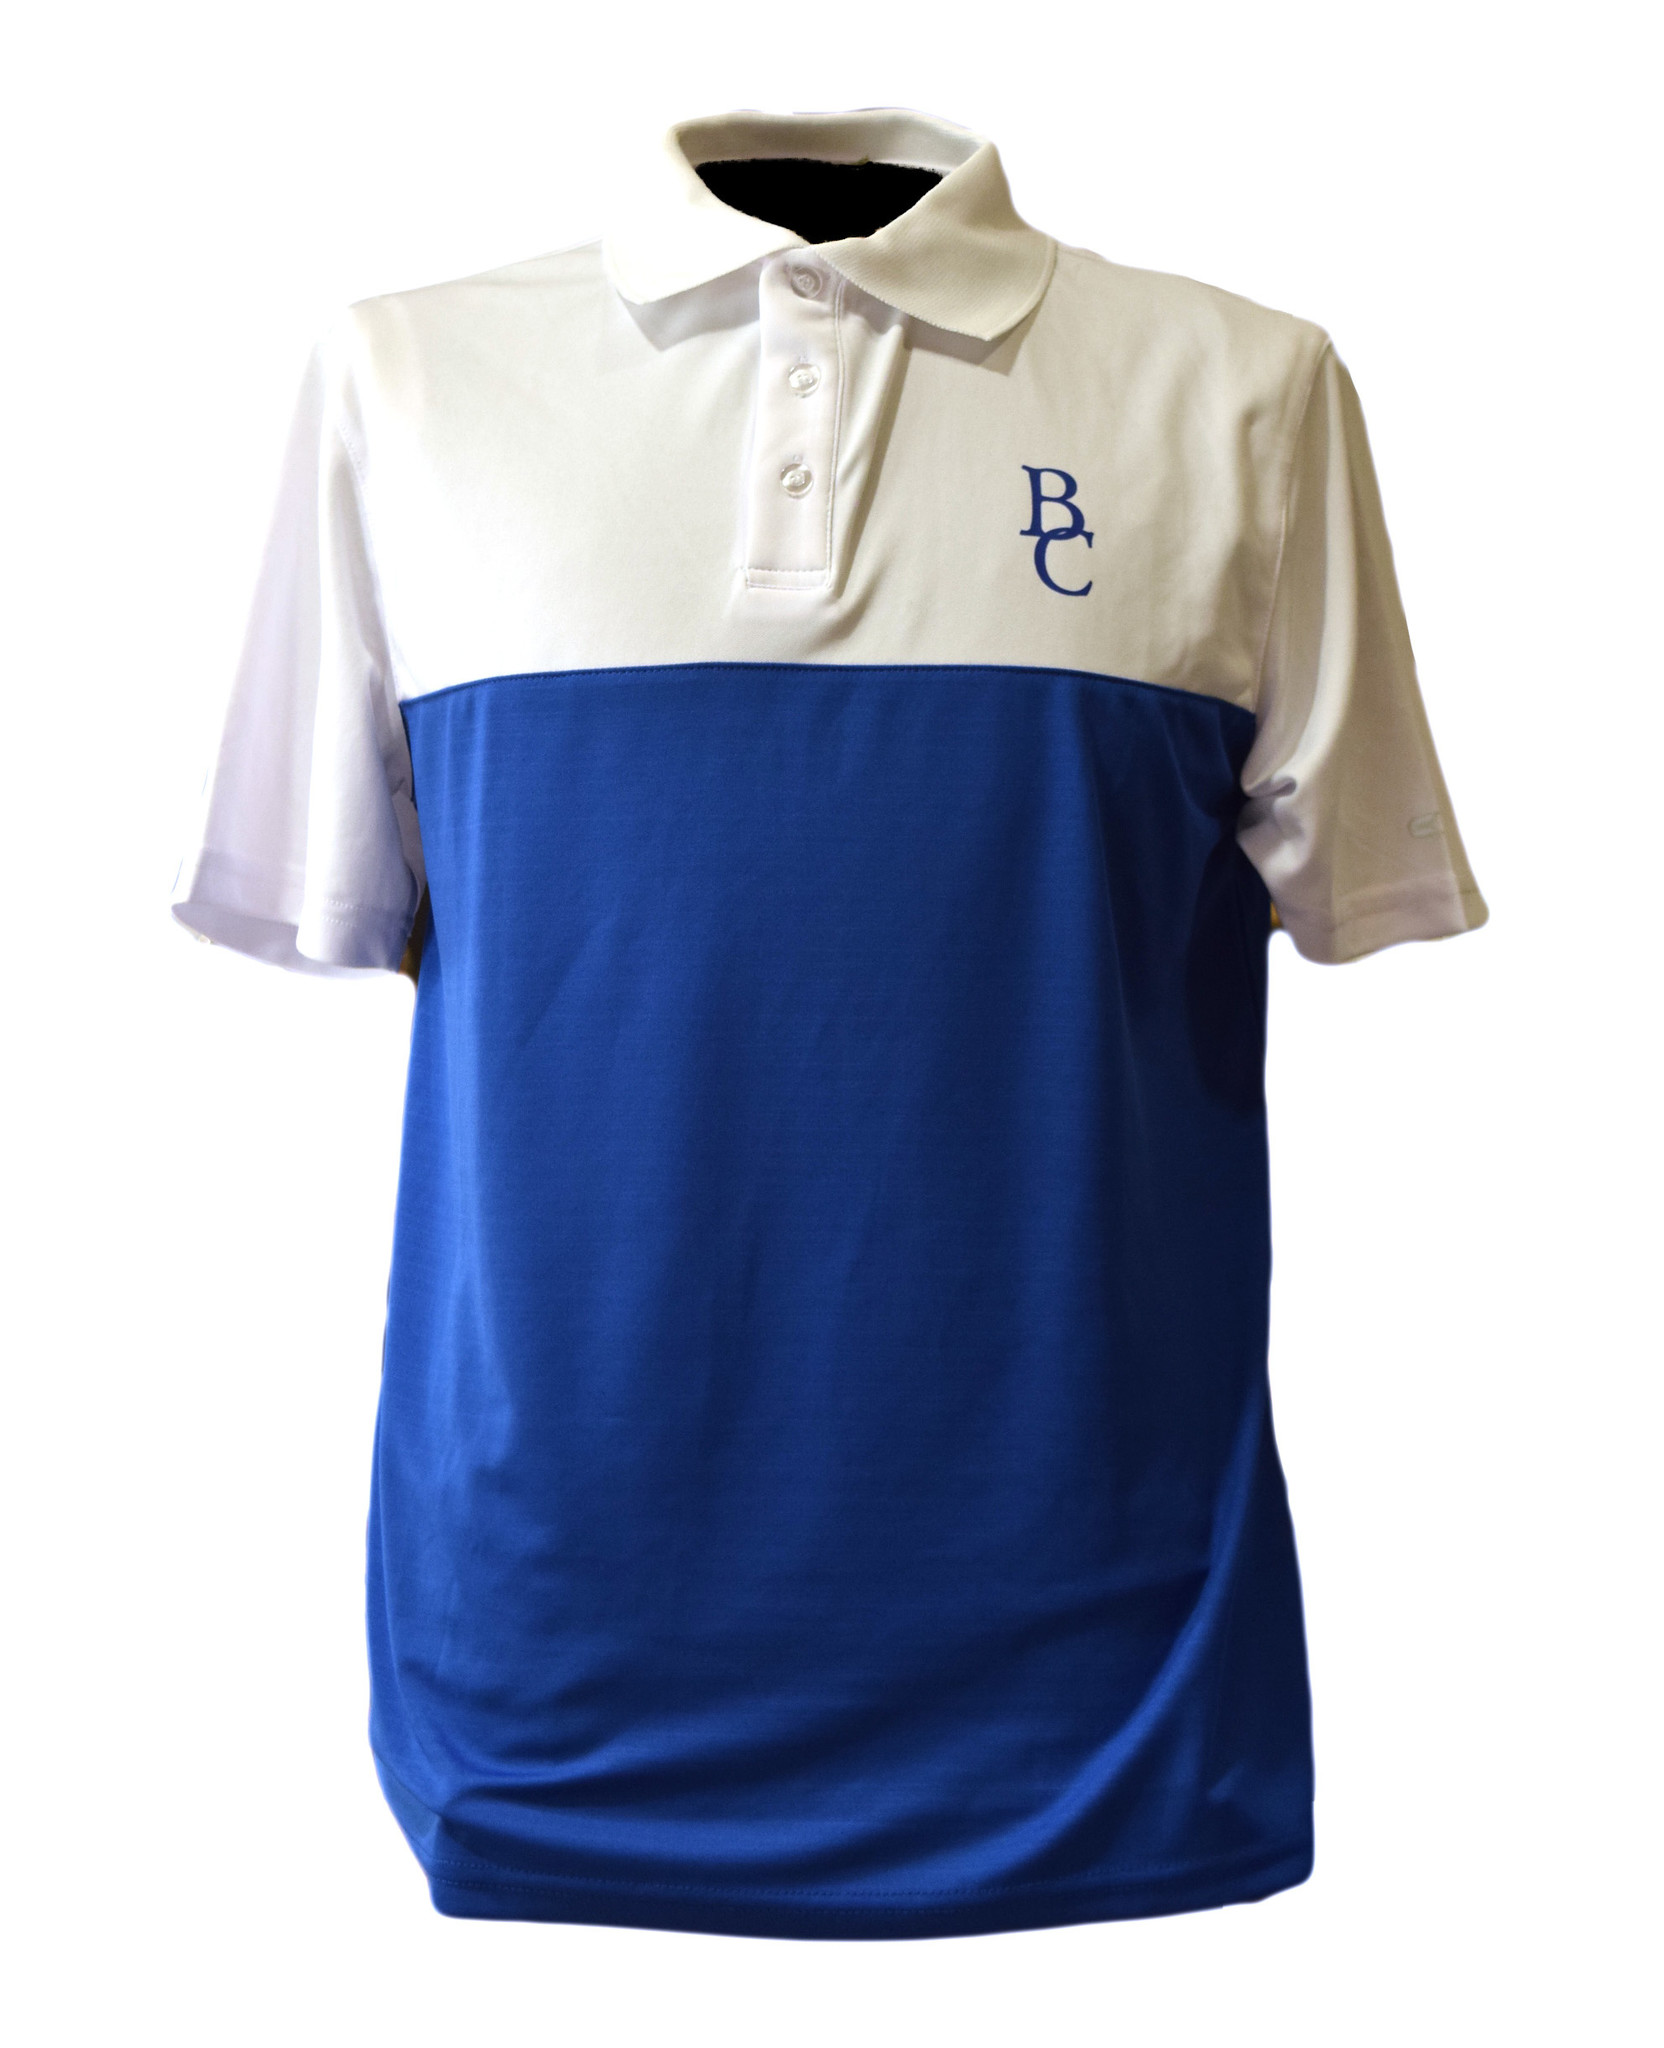 Blue BC Men's Polo with White Sleeves-1